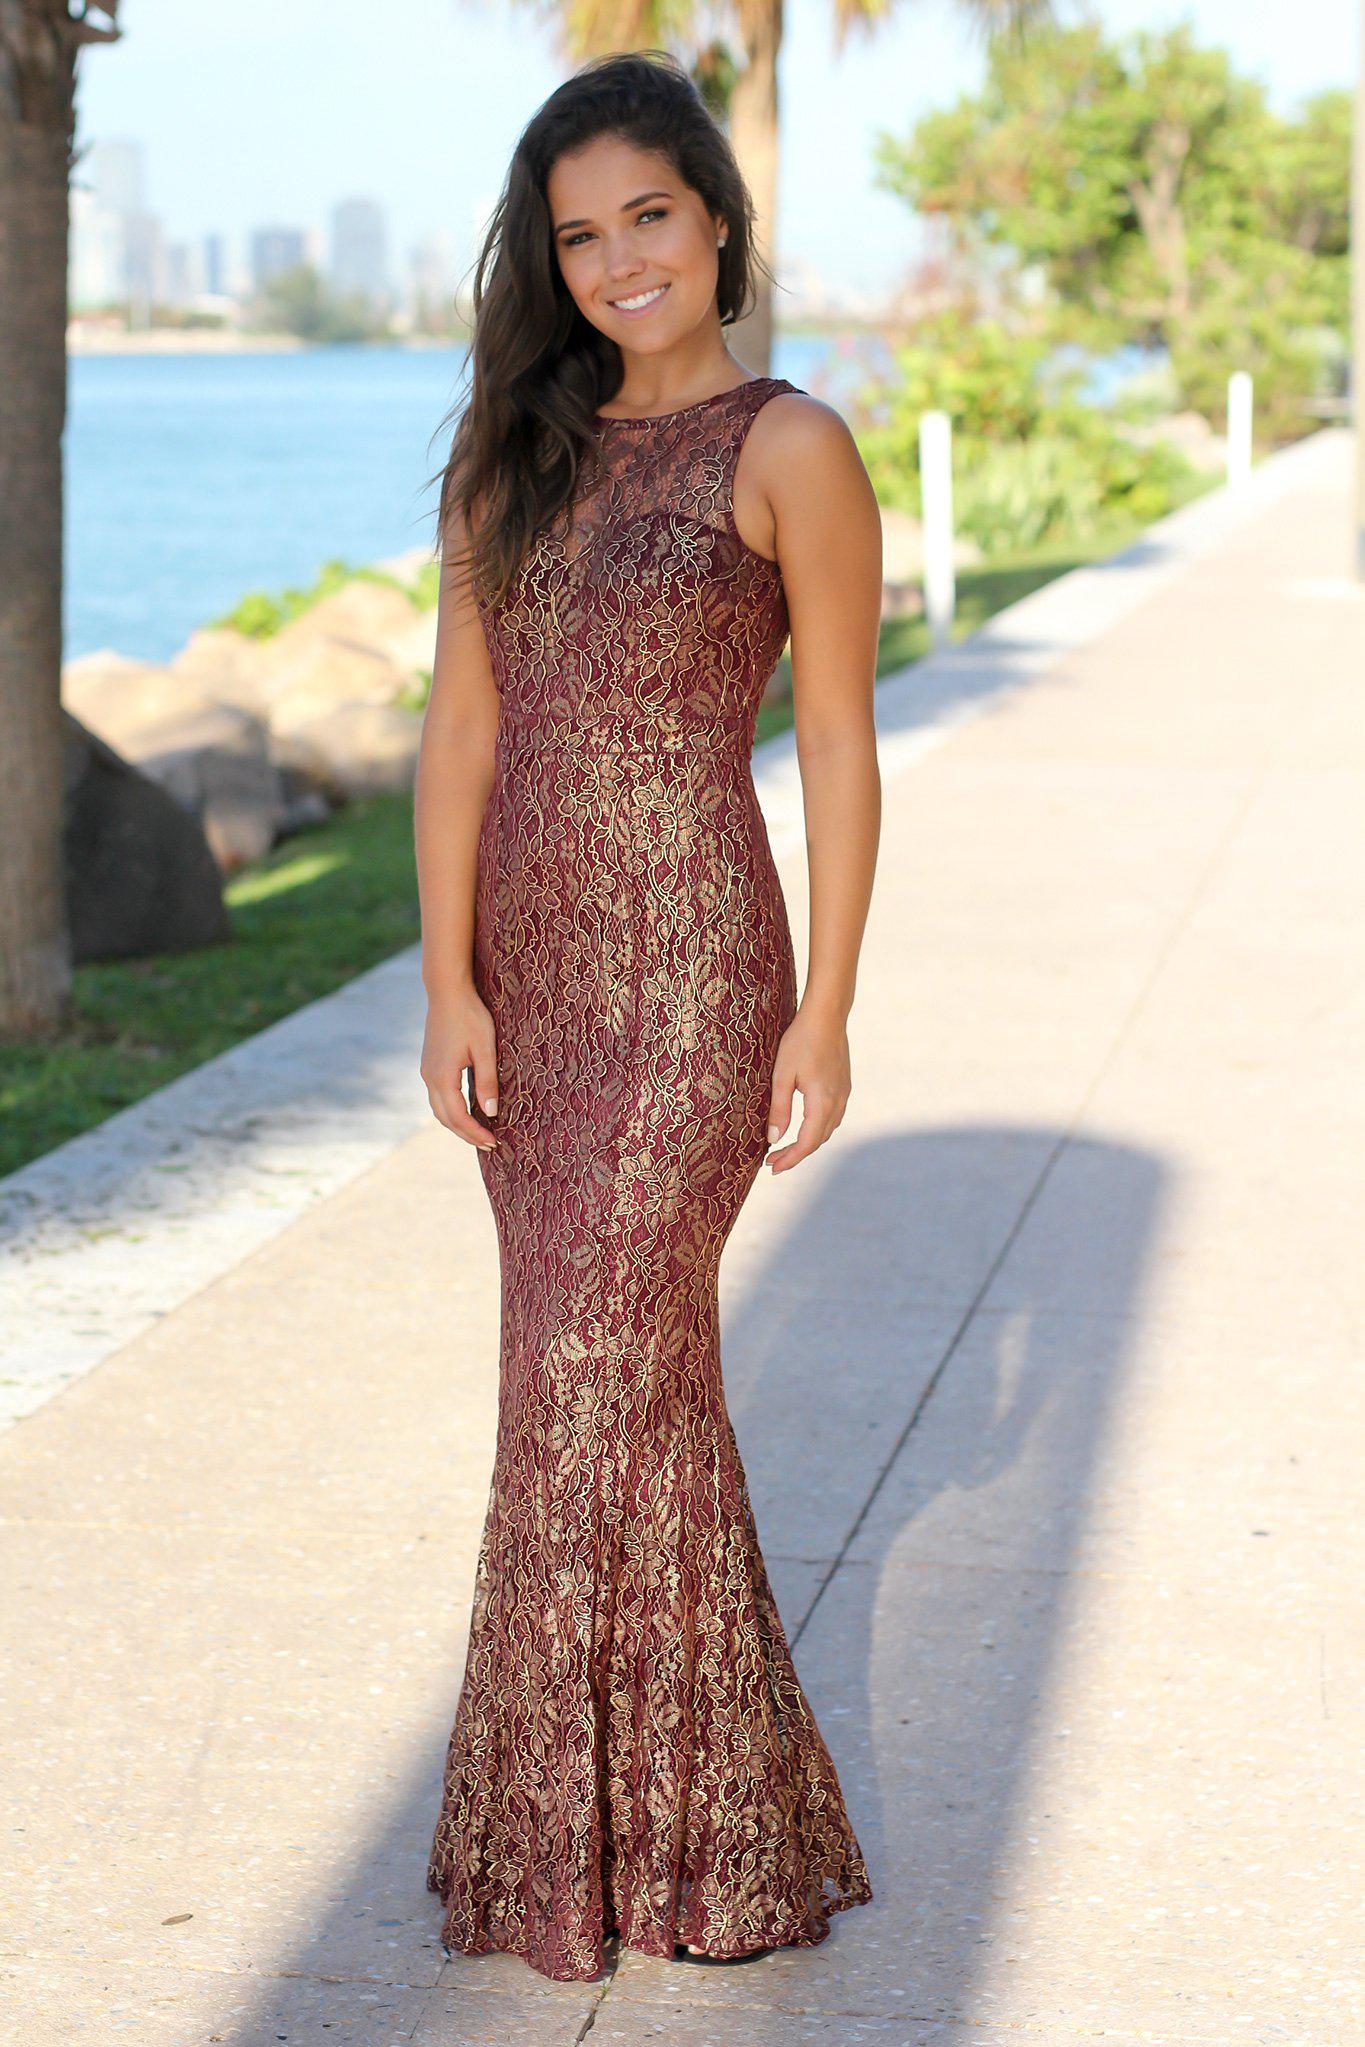 Burgundy and Gold Lace Maxi Dress with Open Back